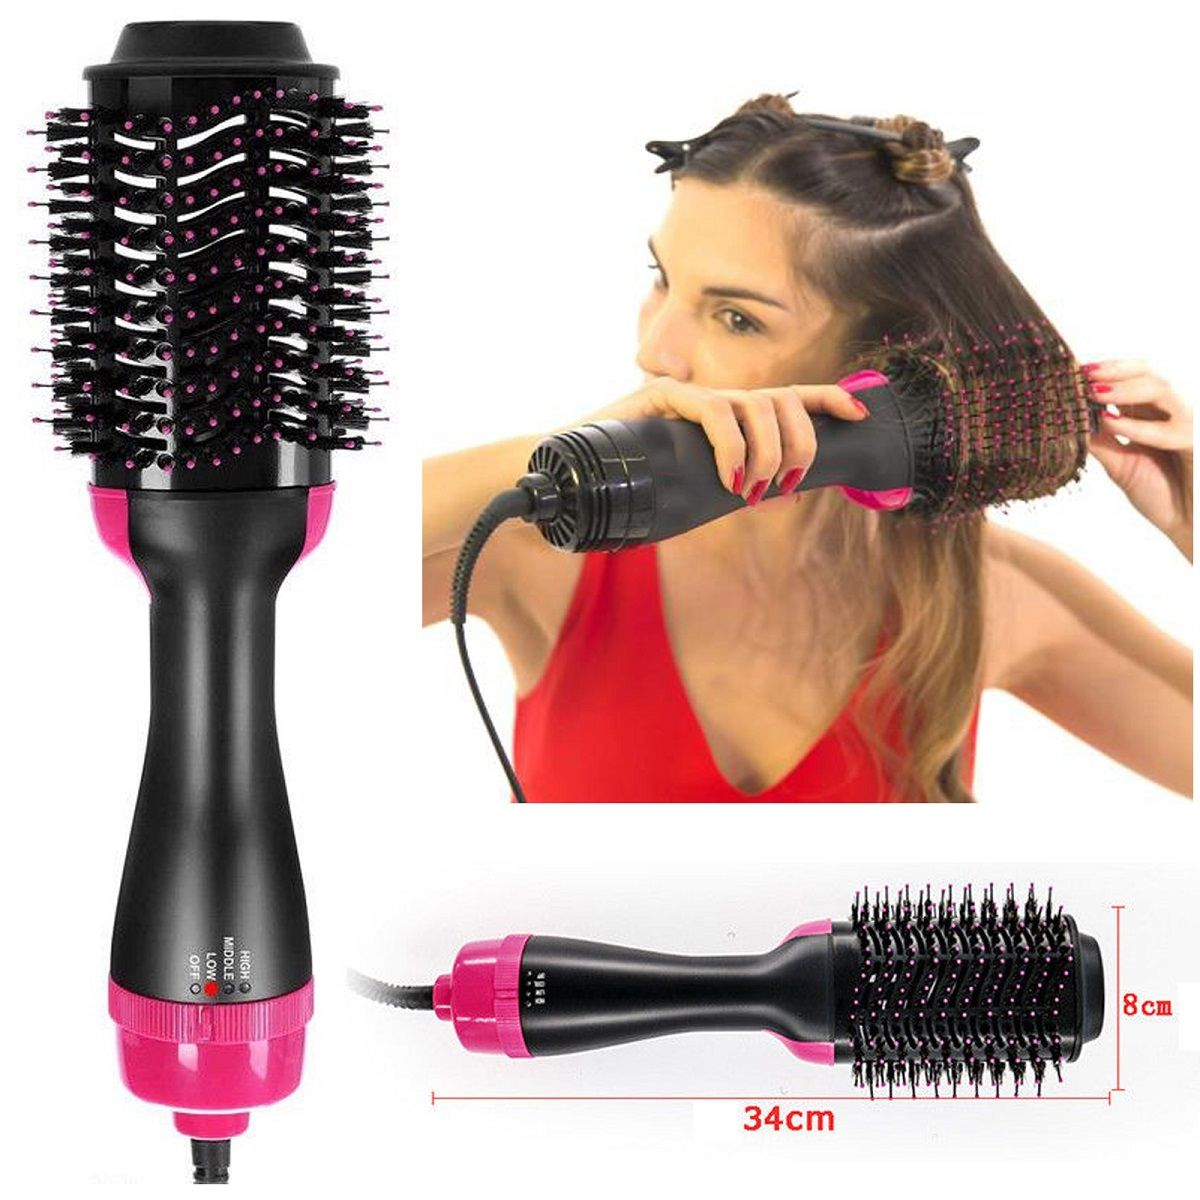 Pro Collection Salon 2 In 1 One Step Hair Dryer and